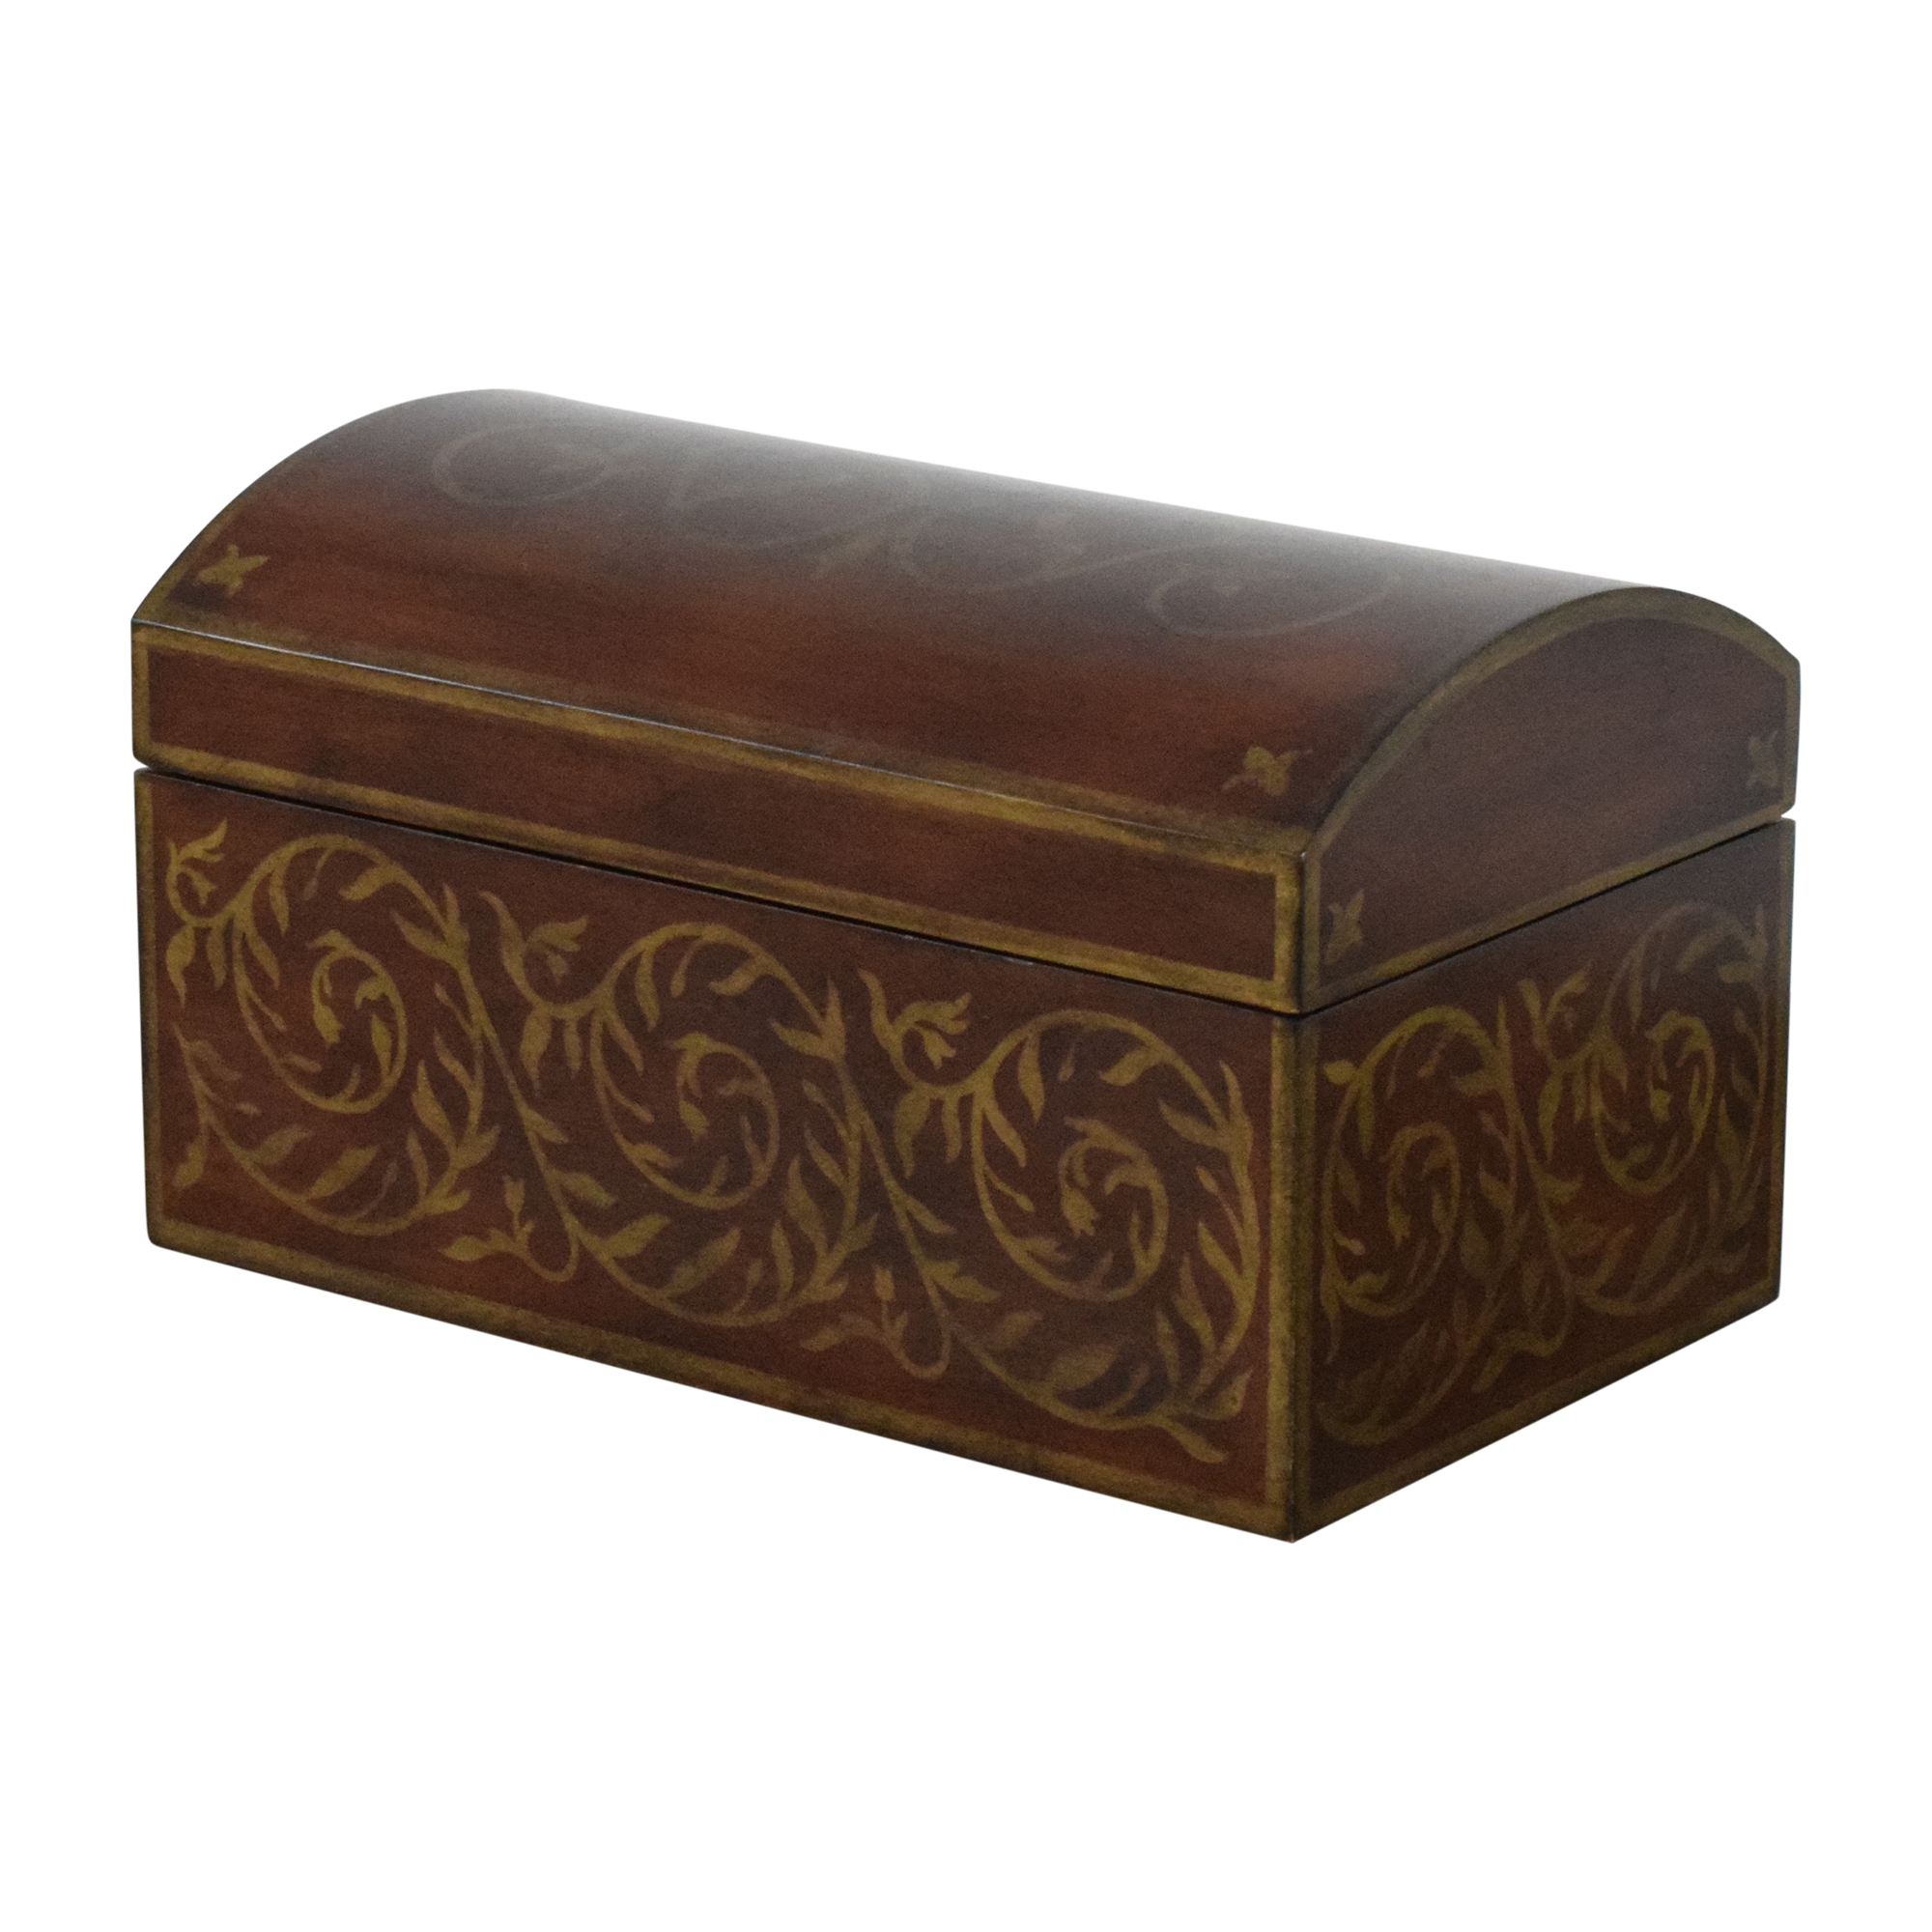 Ethan Allen Ethan Allen Dome Top Jewelry Box ma